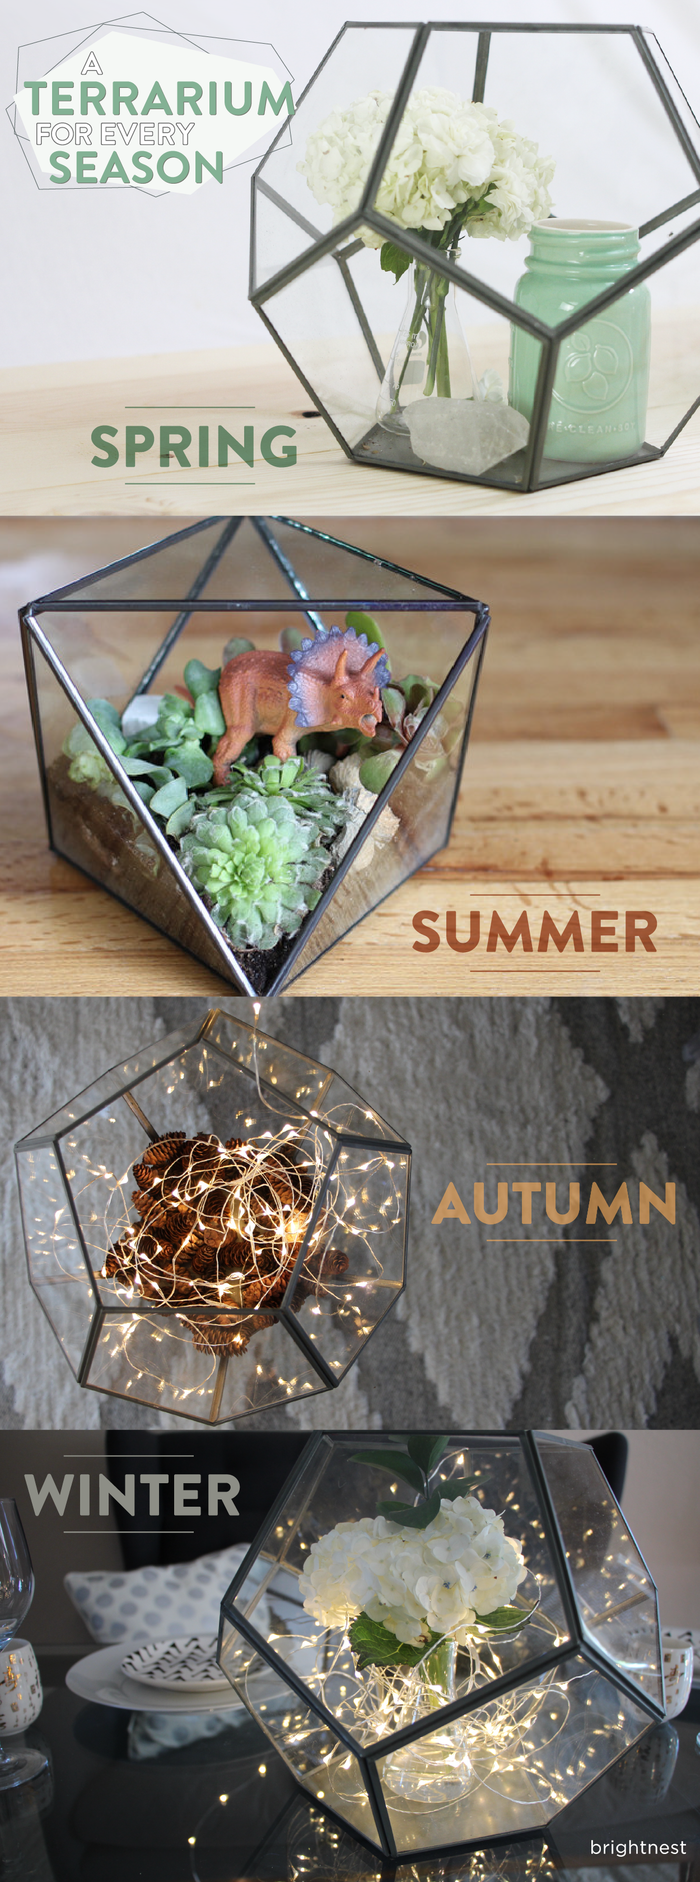 Seasonal terrarium